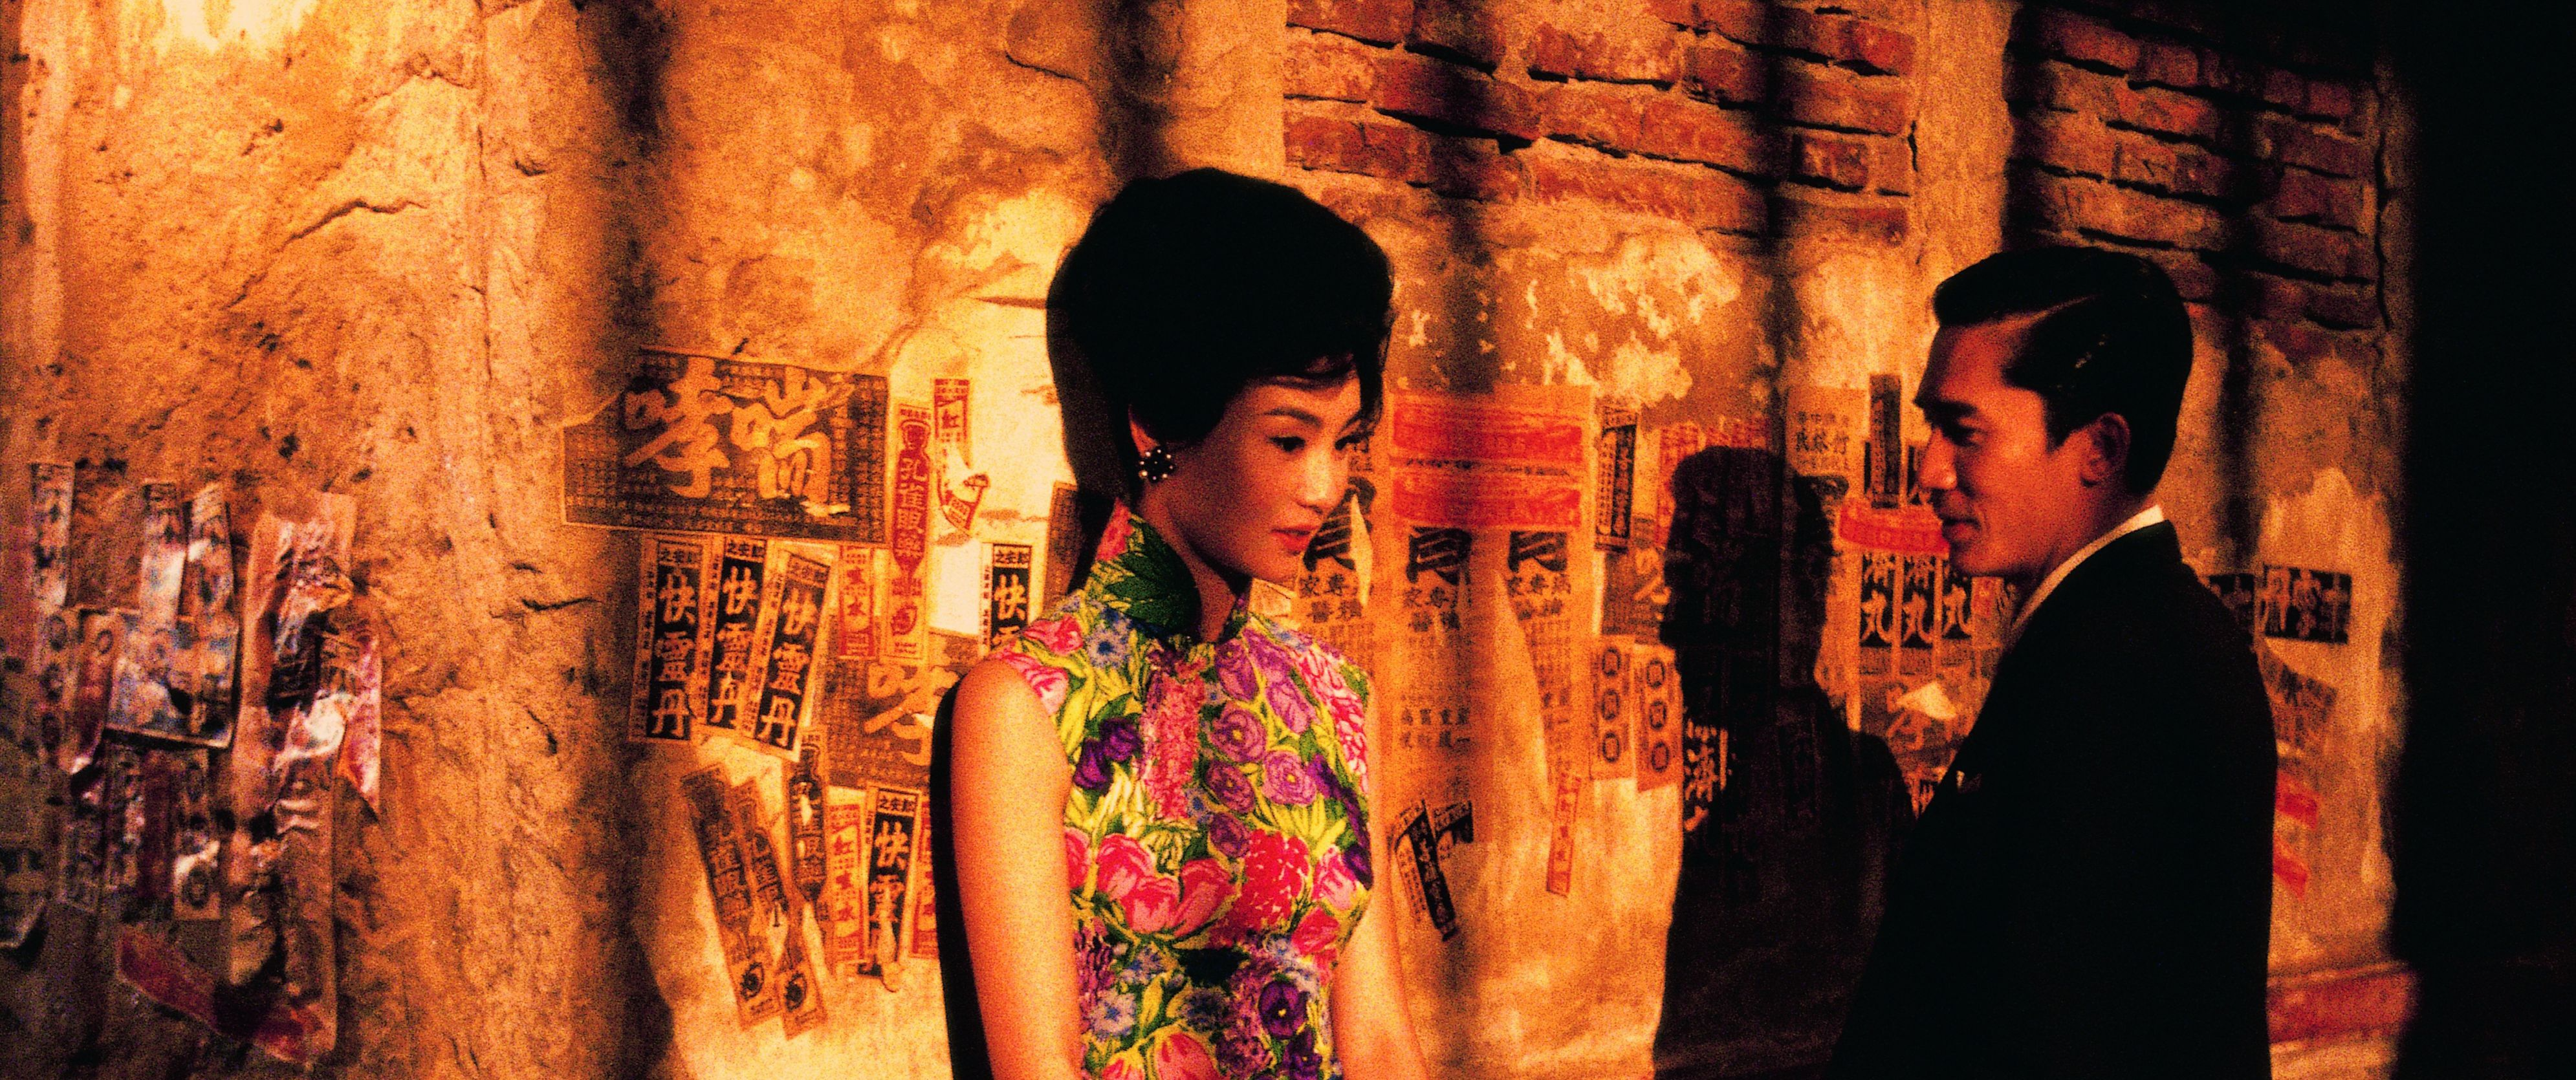 An image from In the Mood for Love